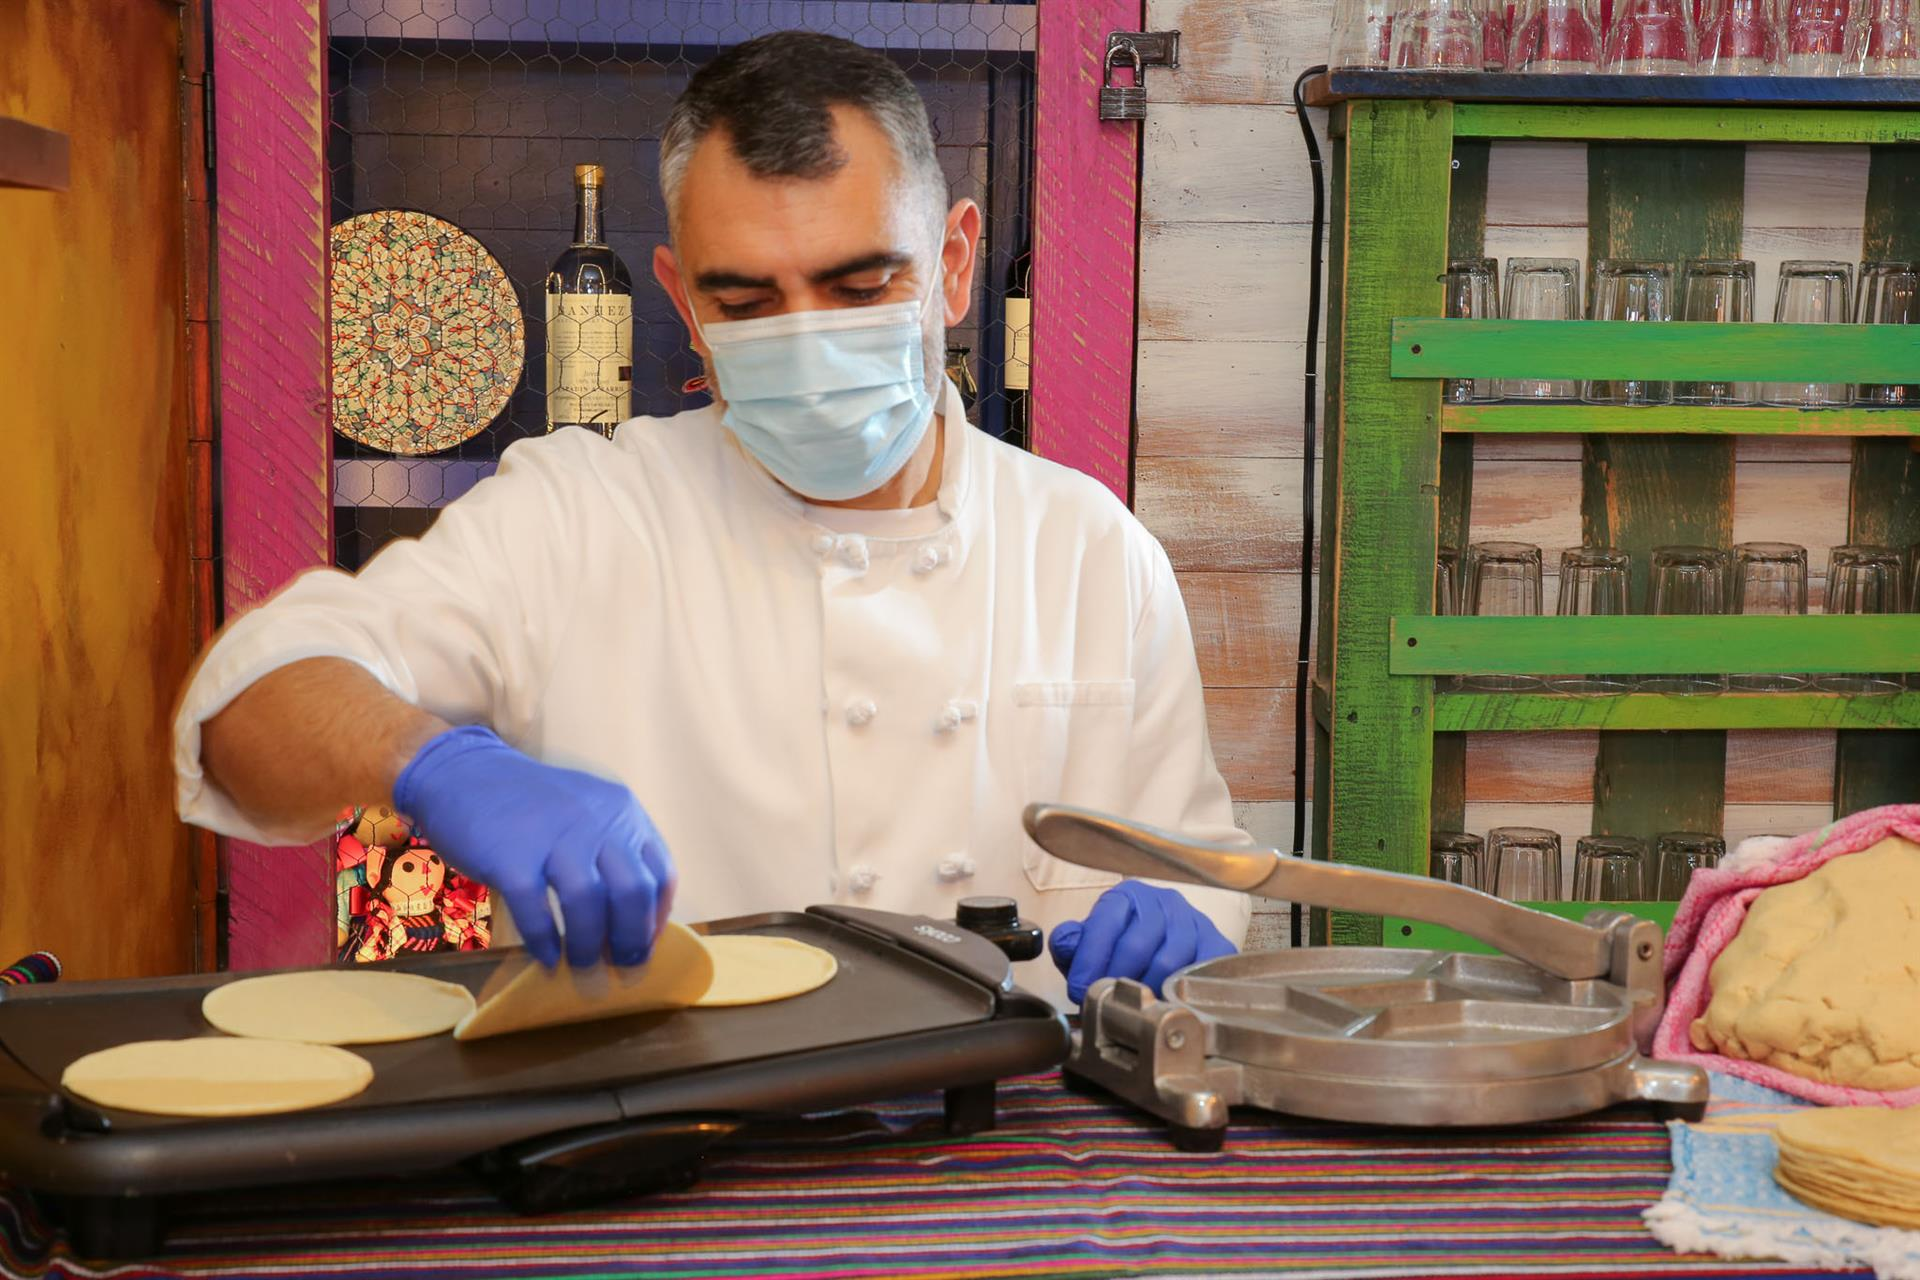 Chef heating up fresh tortillas on a small grill